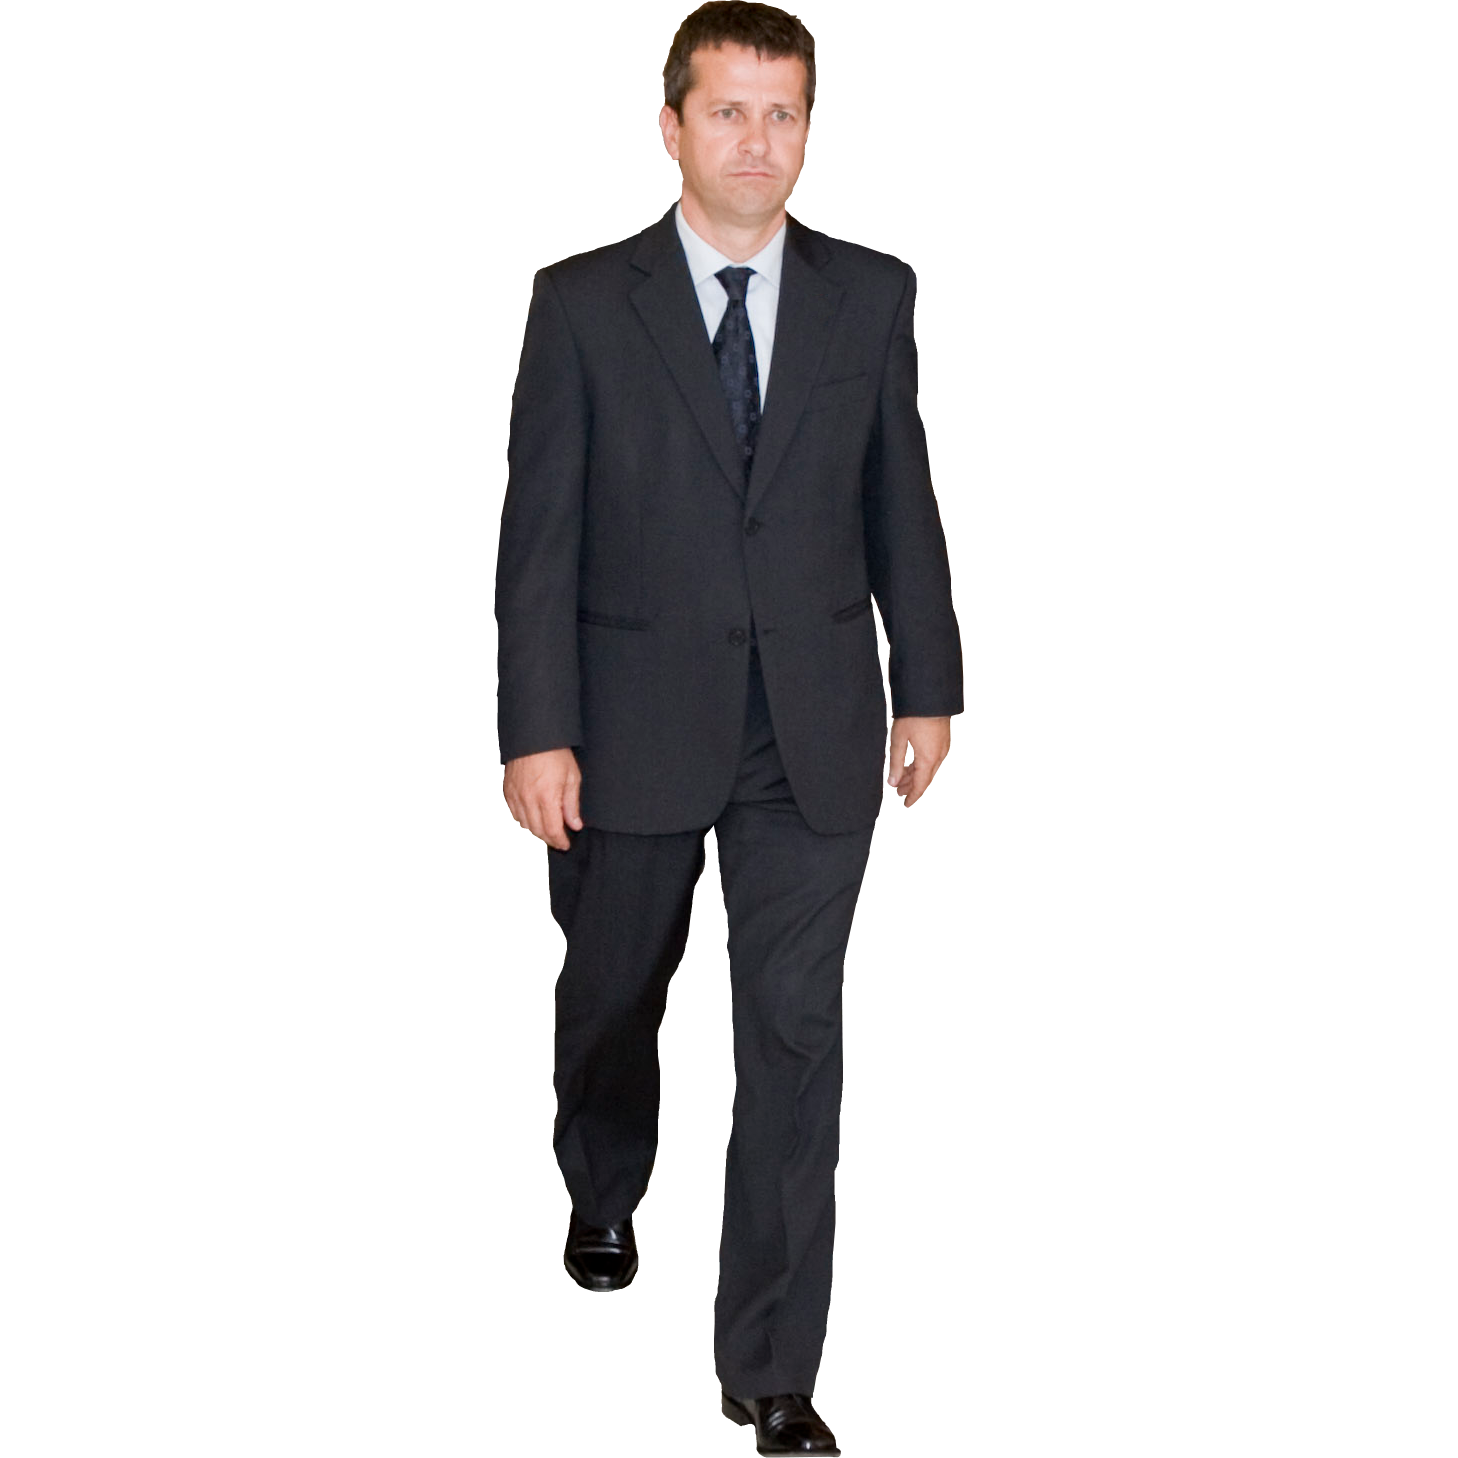 Guy In A Suit PNG - 159702